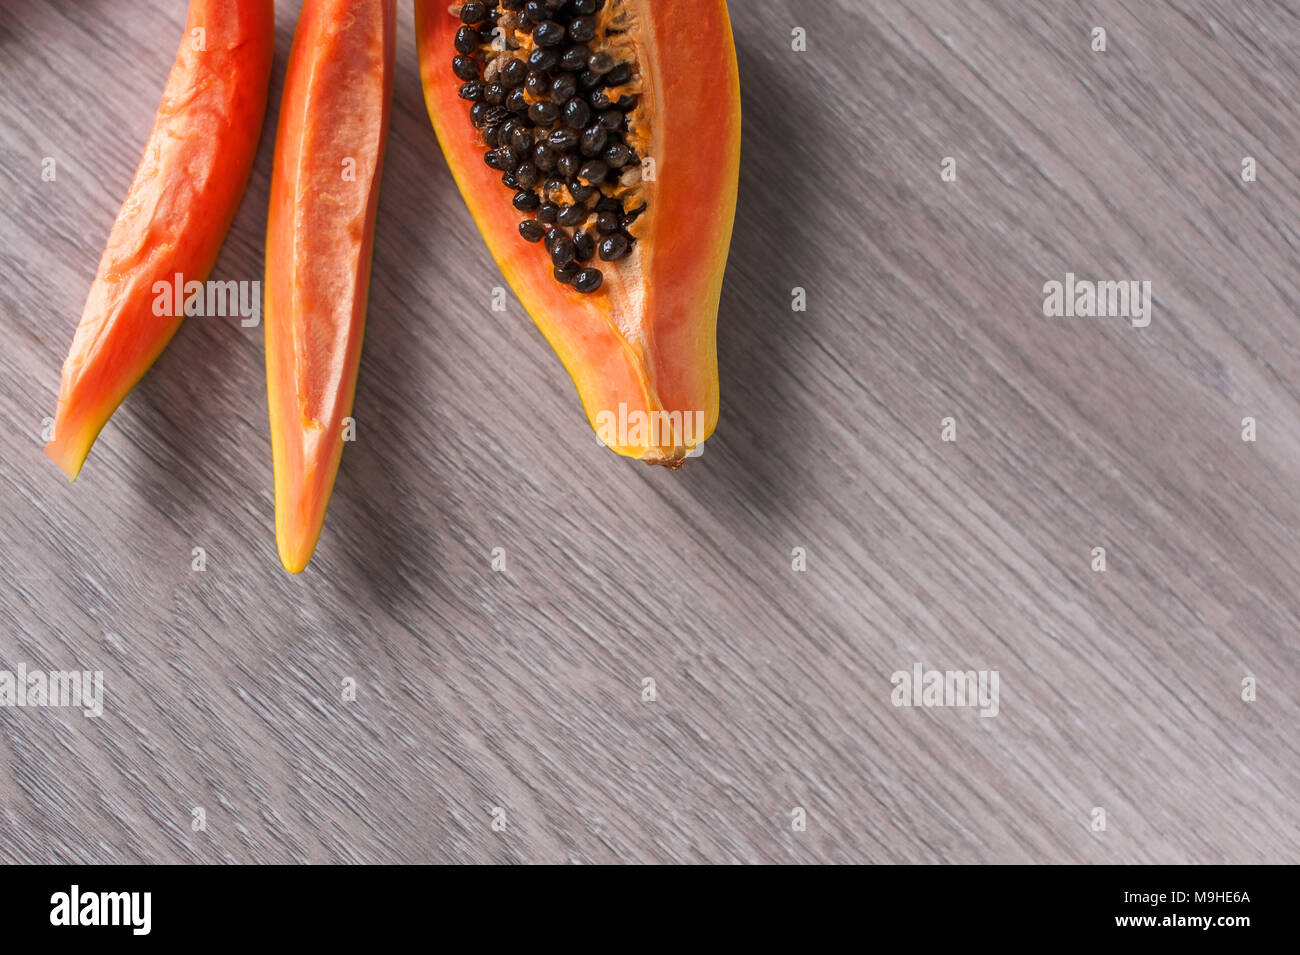 Papaya fruit cut in slices on wooden background Stock Photo